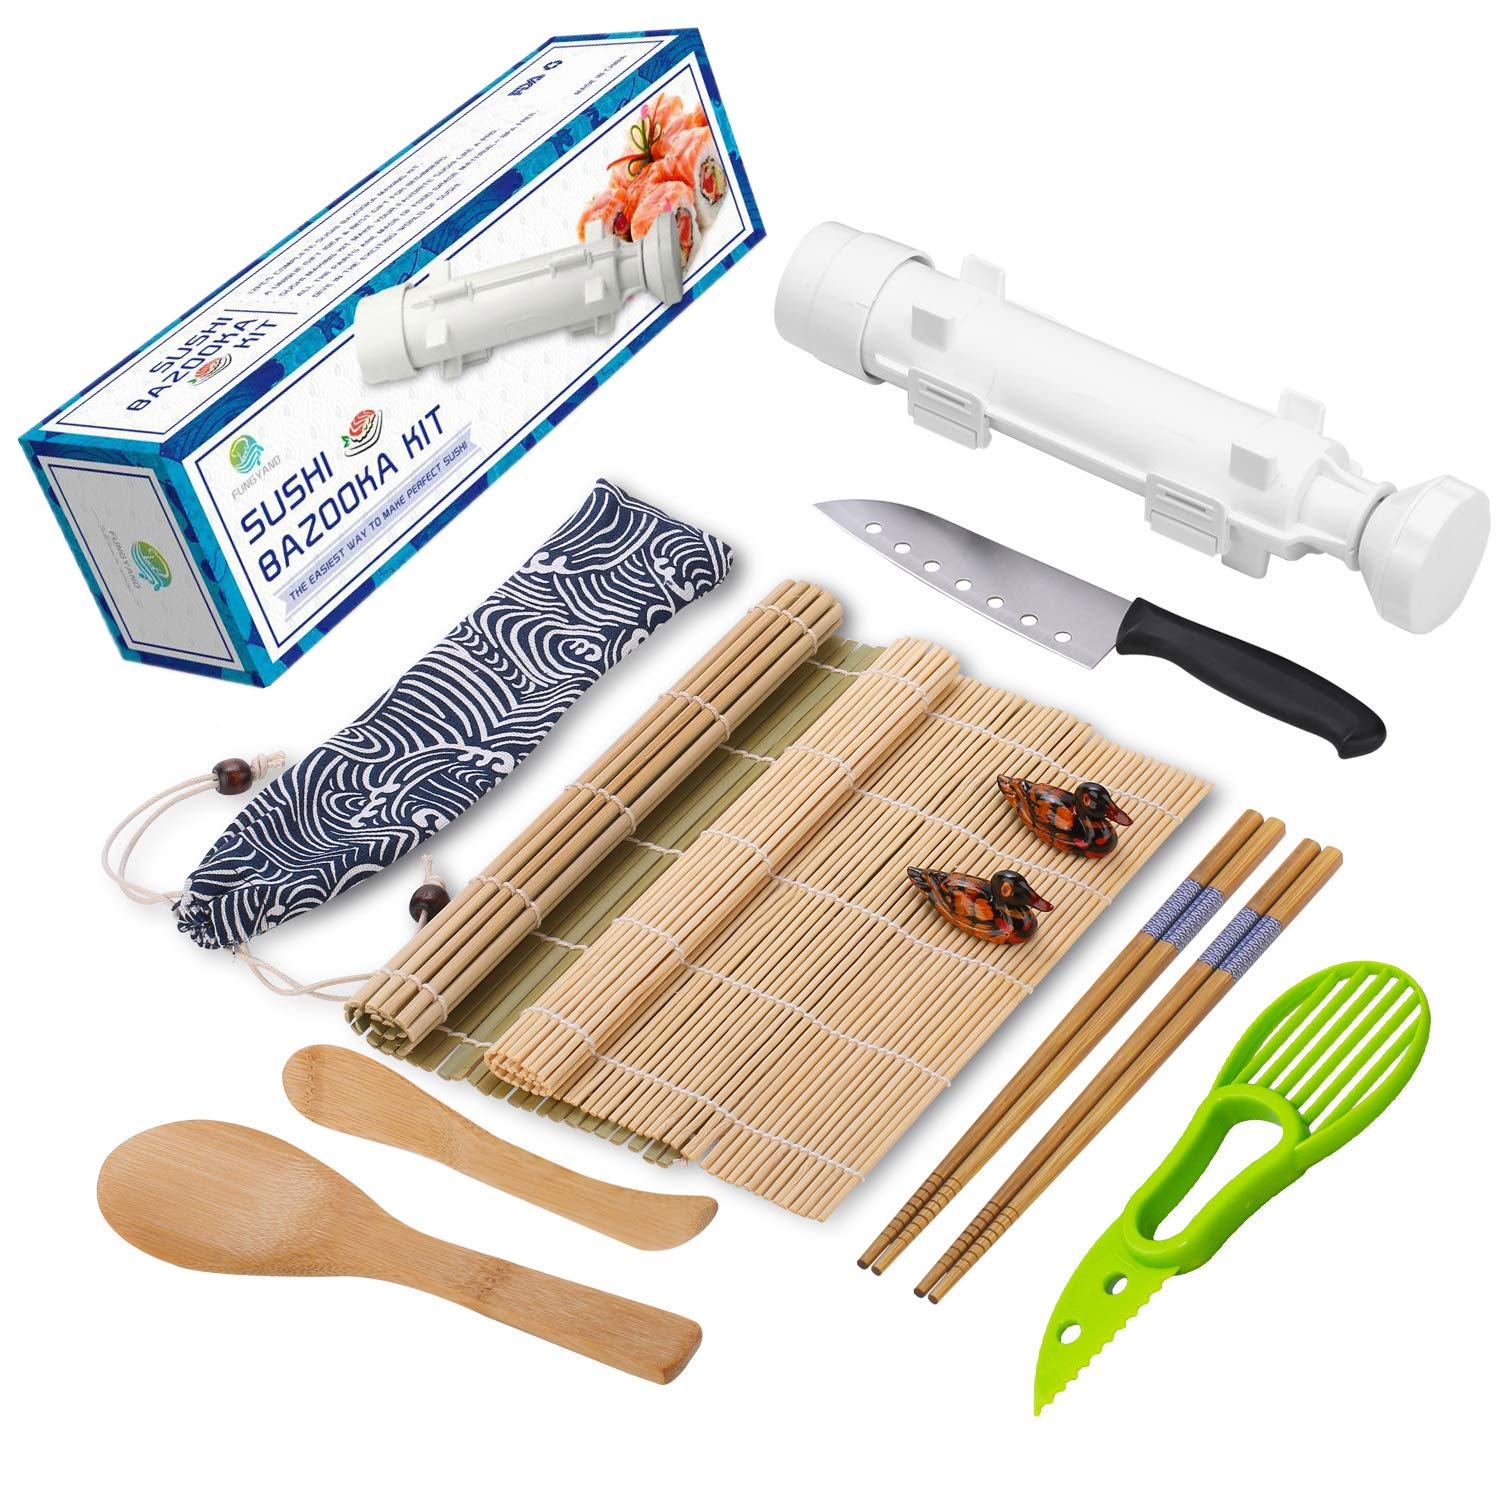 Sushi Making Kit - All In One Sushi Bazooka Maker with Bamboo Mats, Bamboo Chopsticks, Avocado Slicer, Paddle, Spreader, Sushi Knife, Chopsticks Holder and Cotton Bag - Gift Box by Kitchen Solo